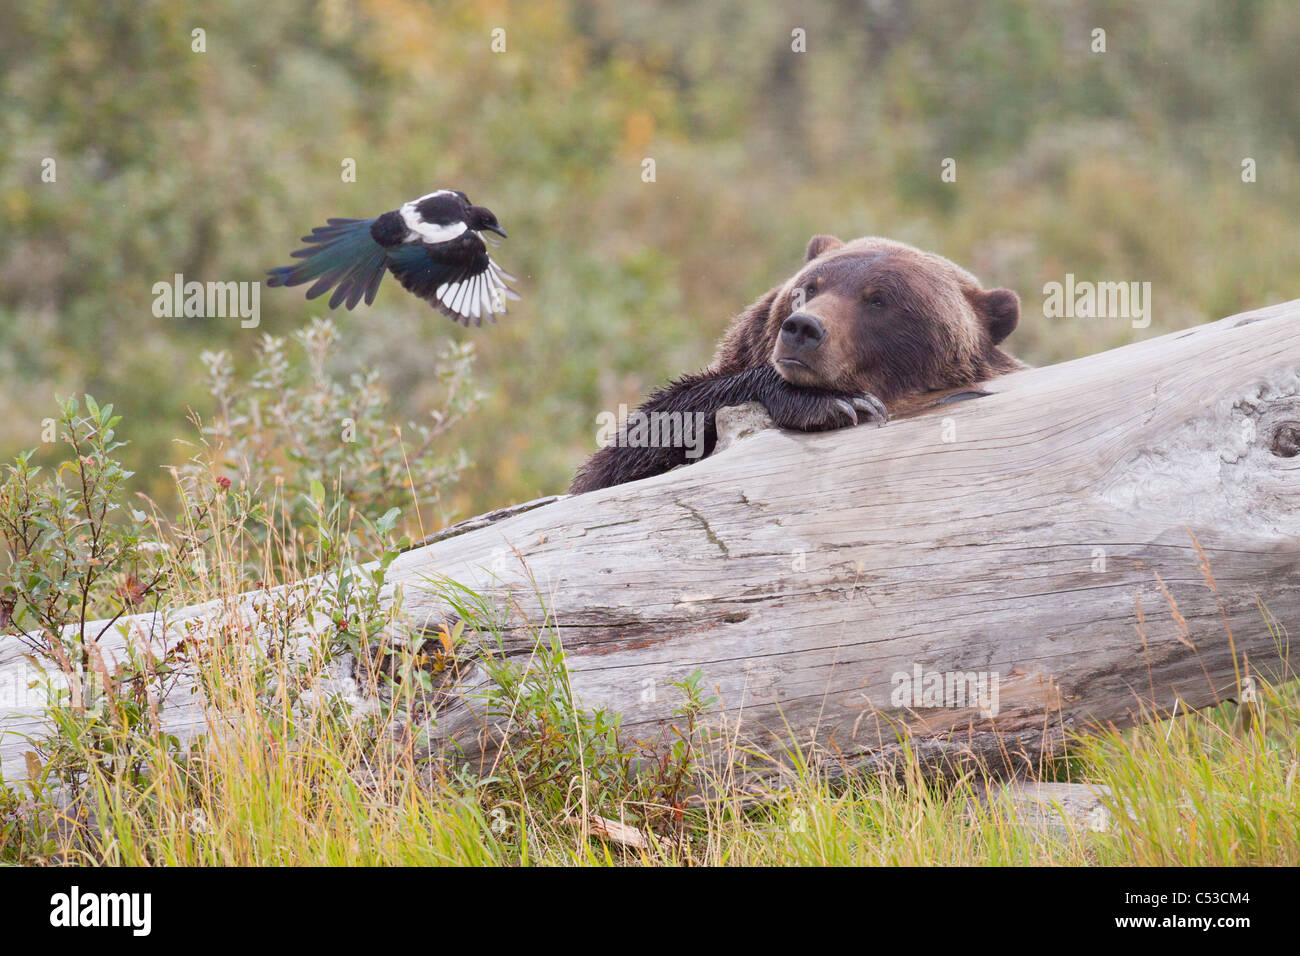 Grizzly bear lies on a log and watches a Magpie flying a few feet away, Alaska Wildlife Conservation Center, Alaska. - Stock Image